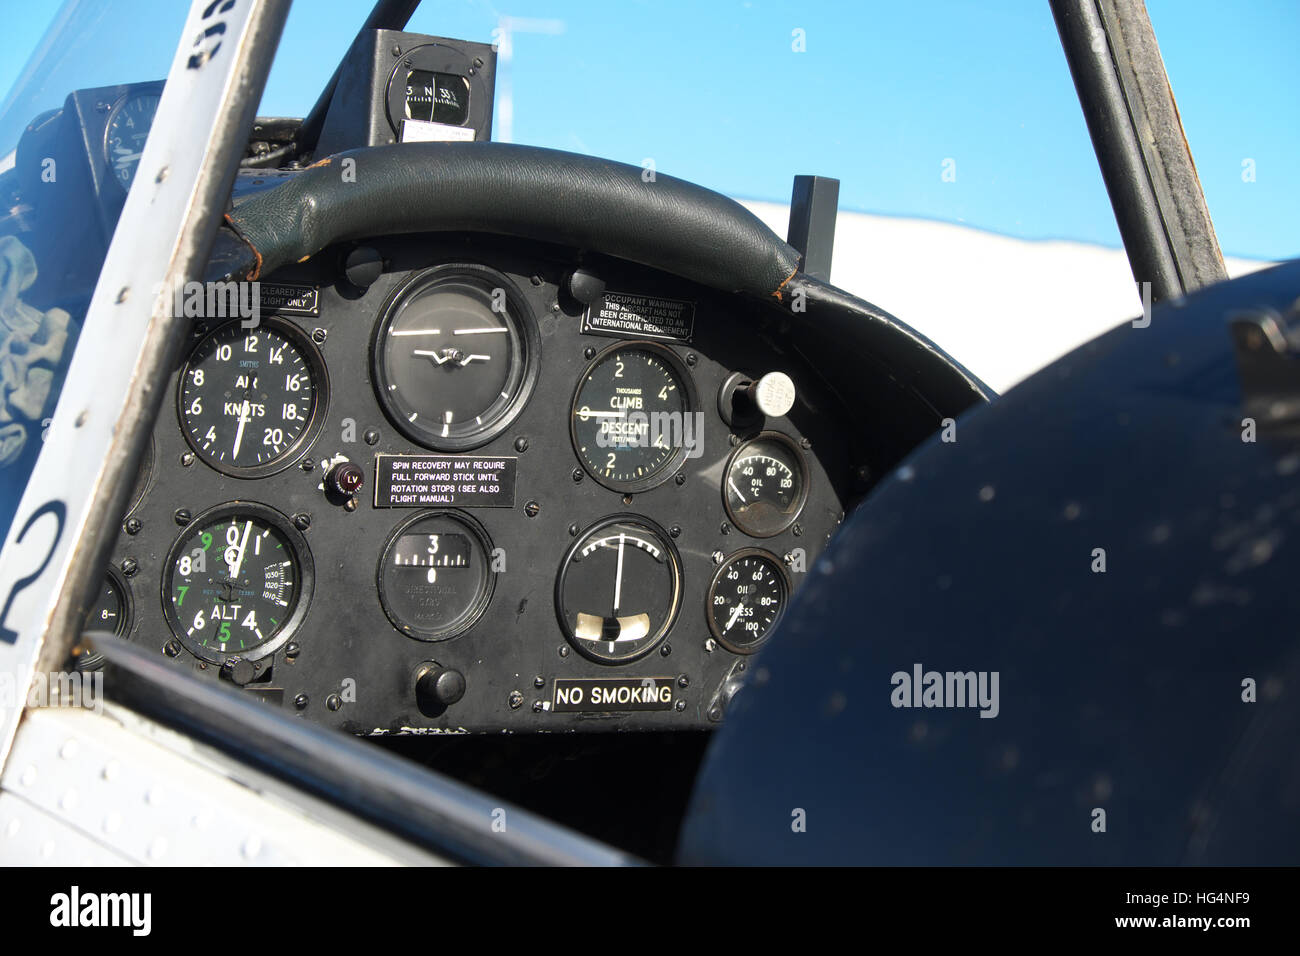 Cockpit of a DHC 1 Chipmunk basic trainer aircraft built in the 1950s and used by the RAF until the 1980s - Stock Image